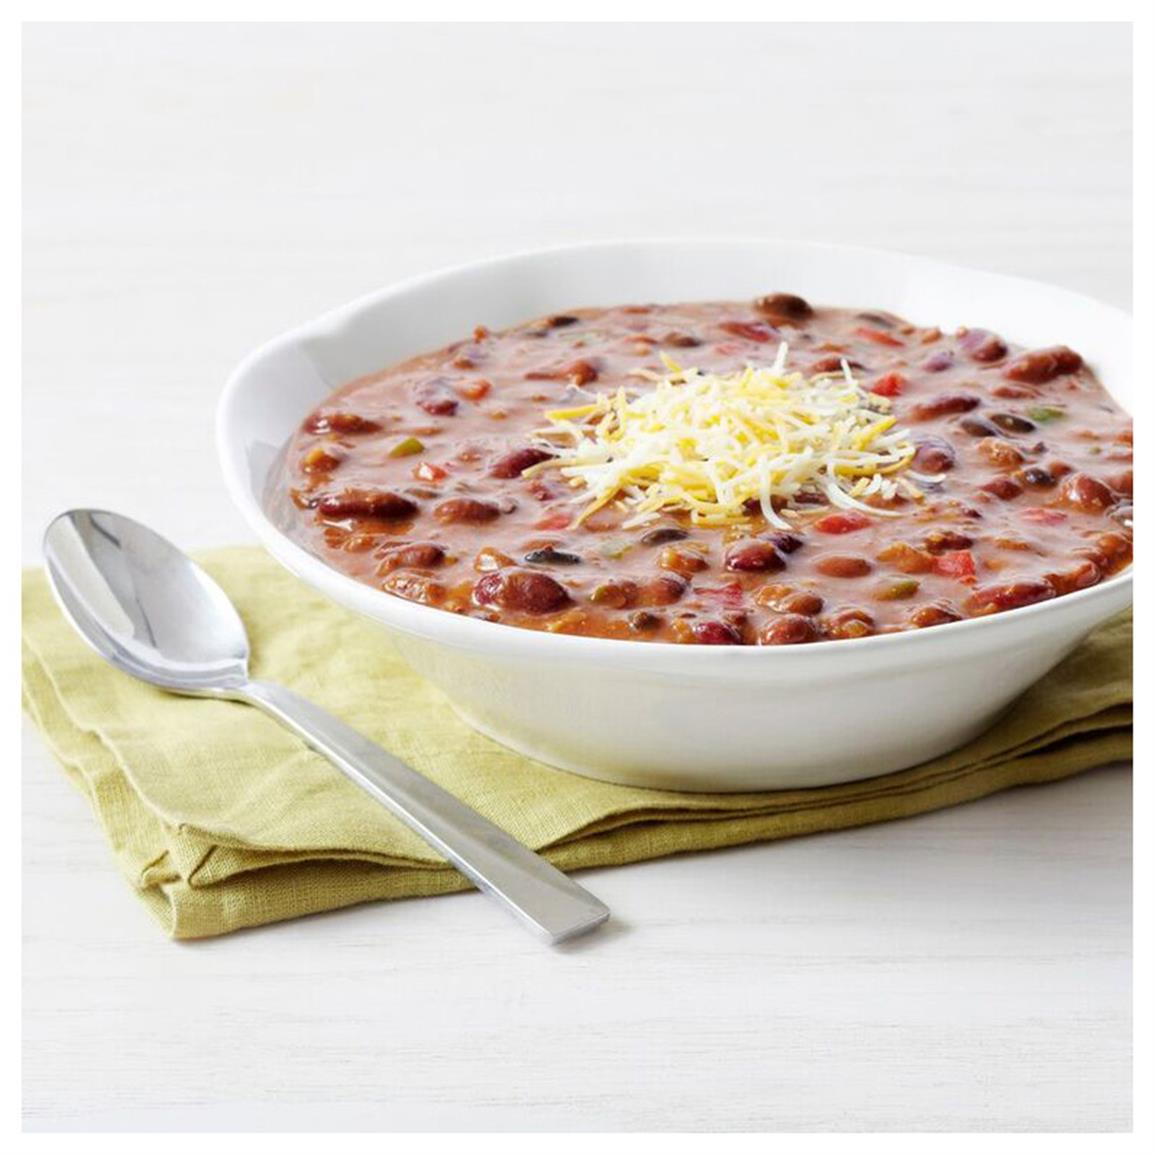 1 can Southwest Chili (34 servings)